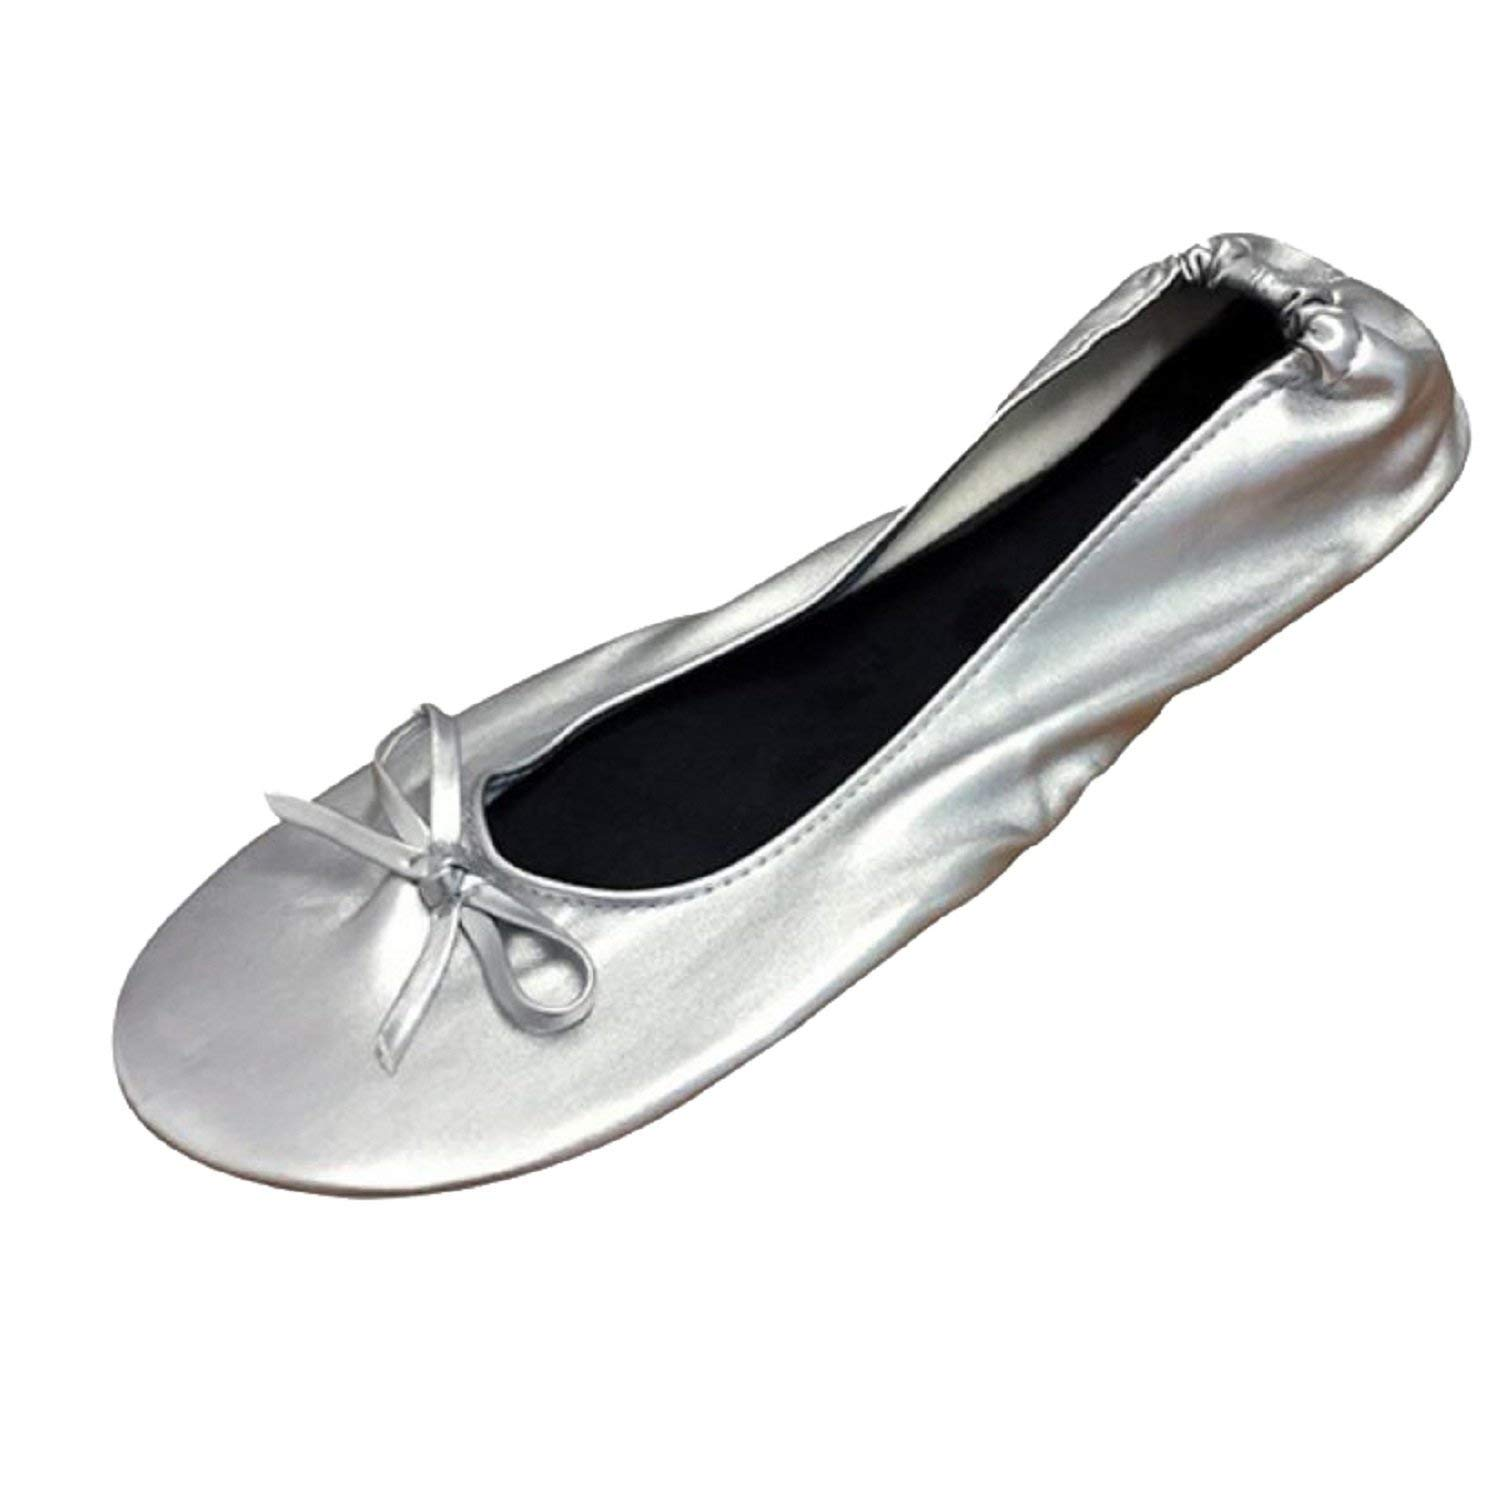 Foldable Flats with Expandable Tote Bag for Carrying High Heels Silver Womens.